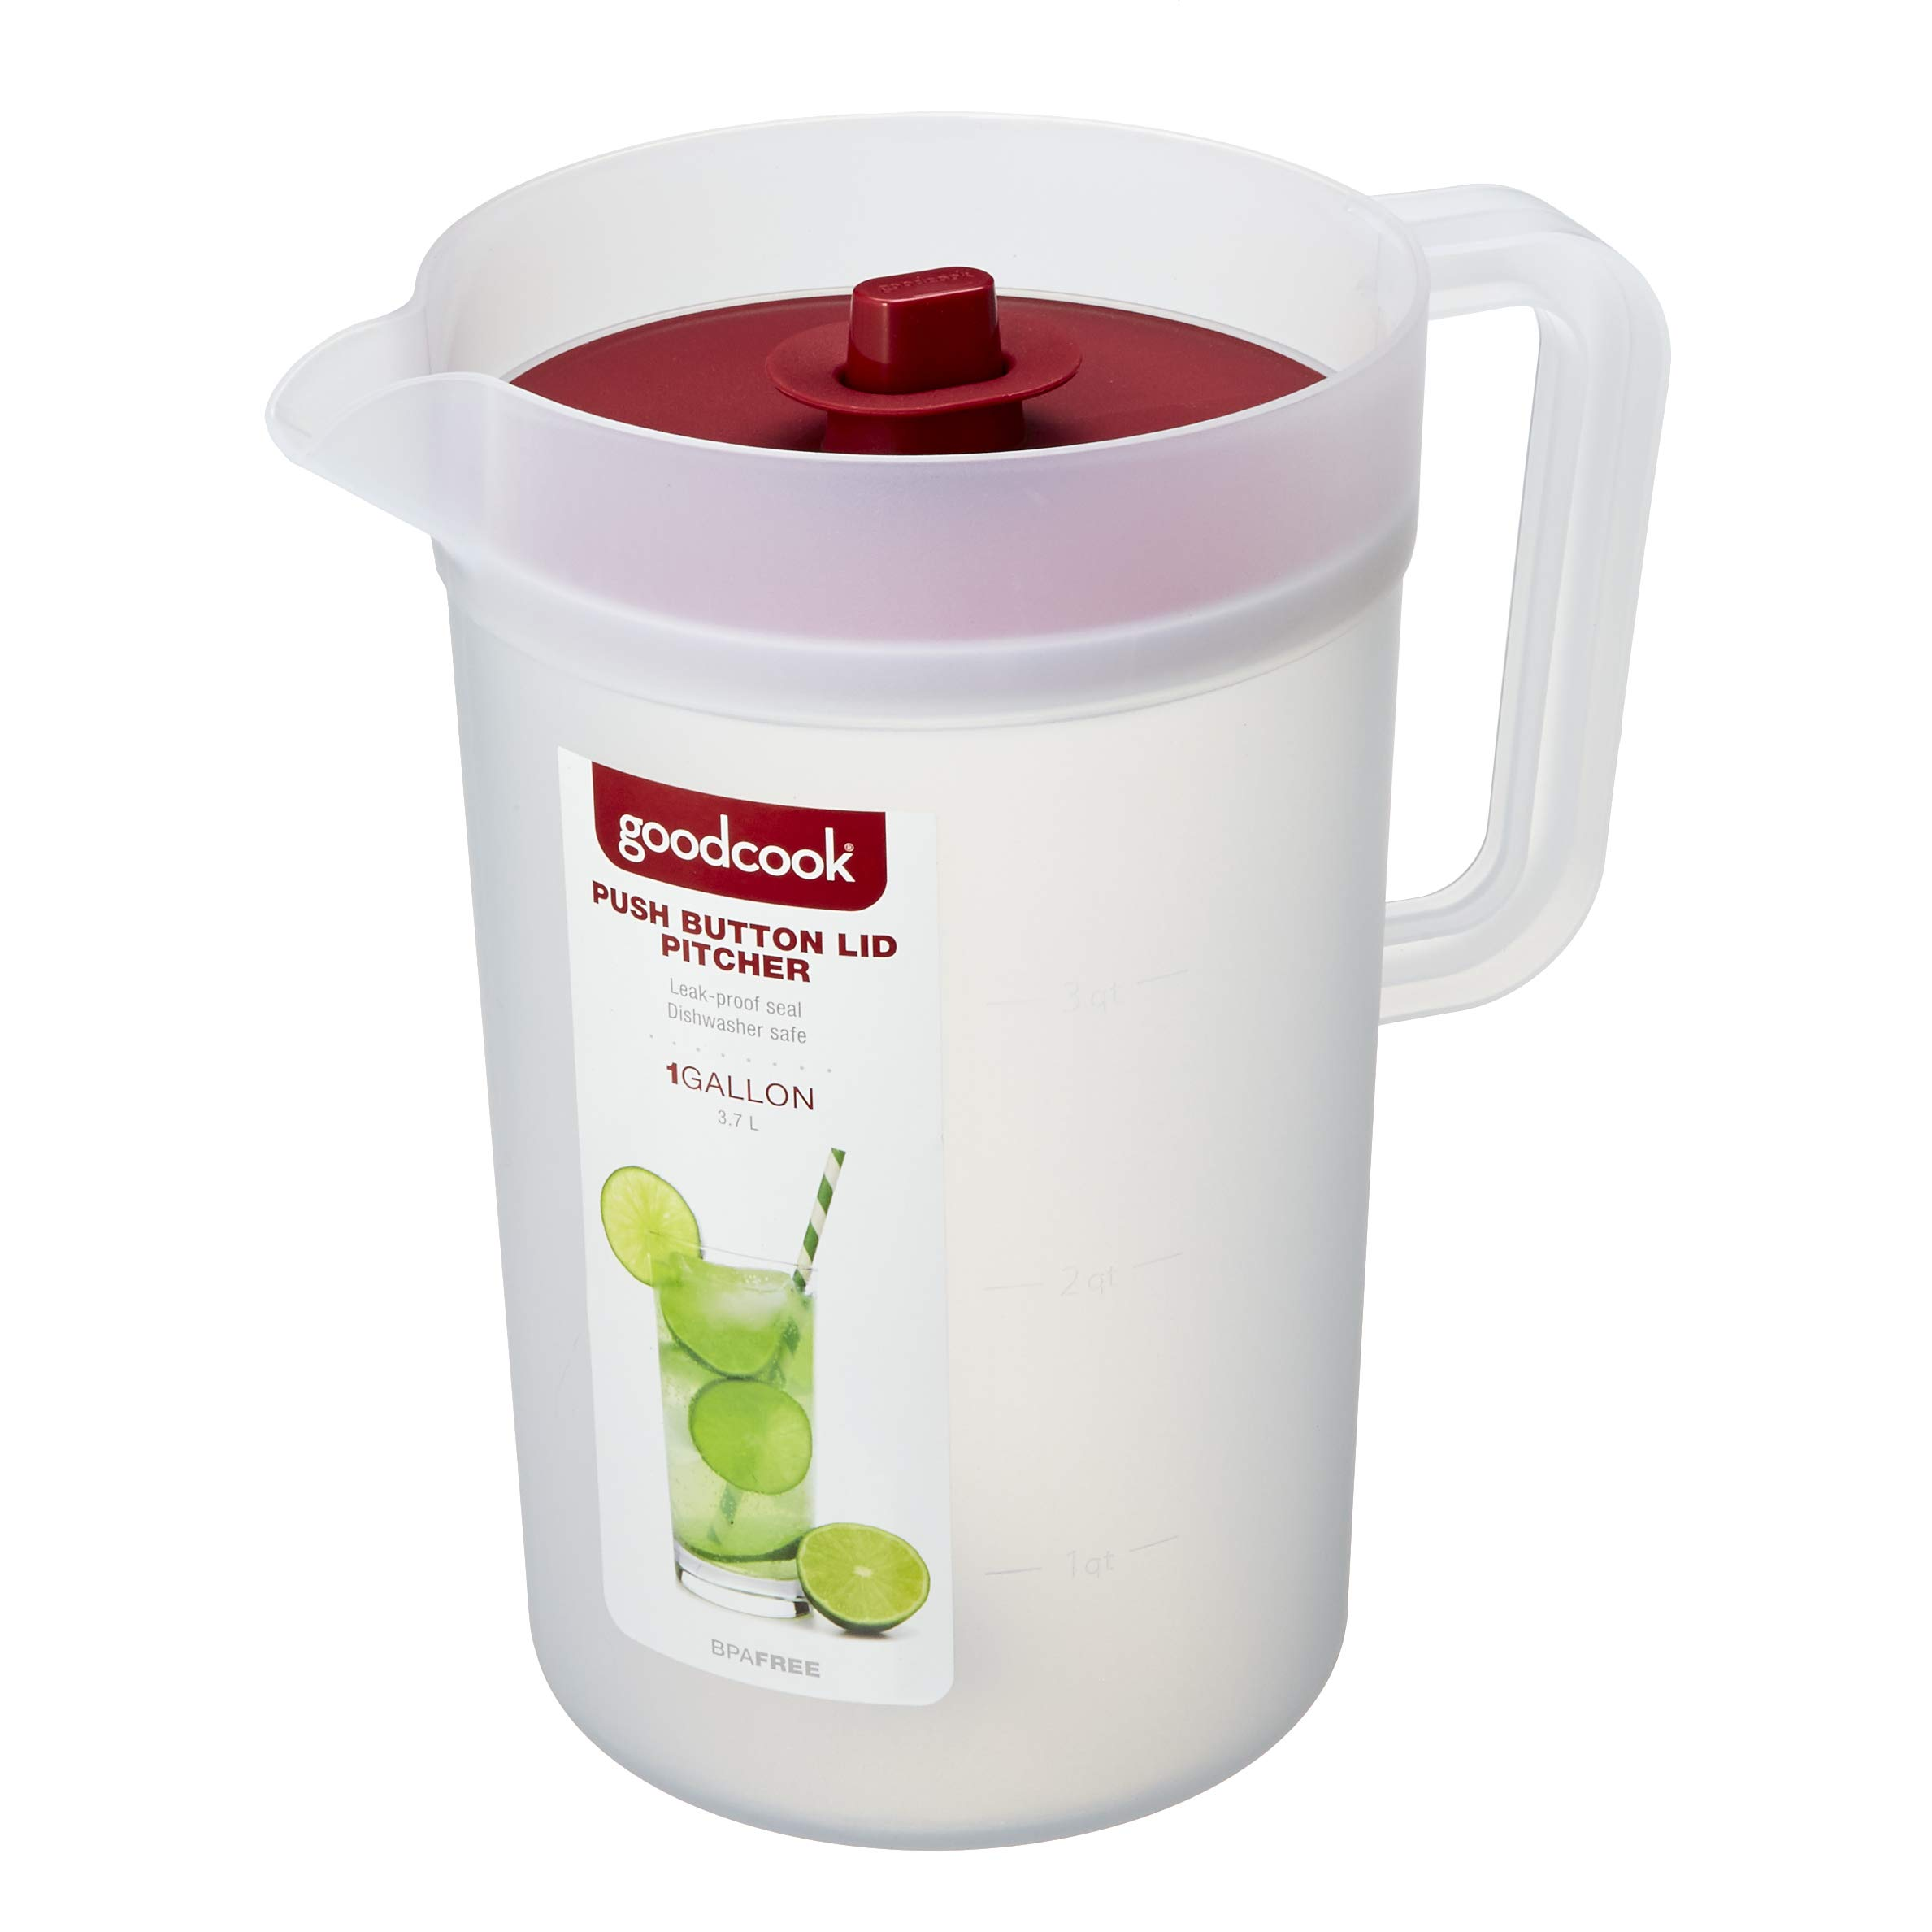 GoodCook 1 Gallon Plastic Pitcher with Vacuum Suction Seal Lid, juice, water, mixed drinks, Clear and Red by Good Cook